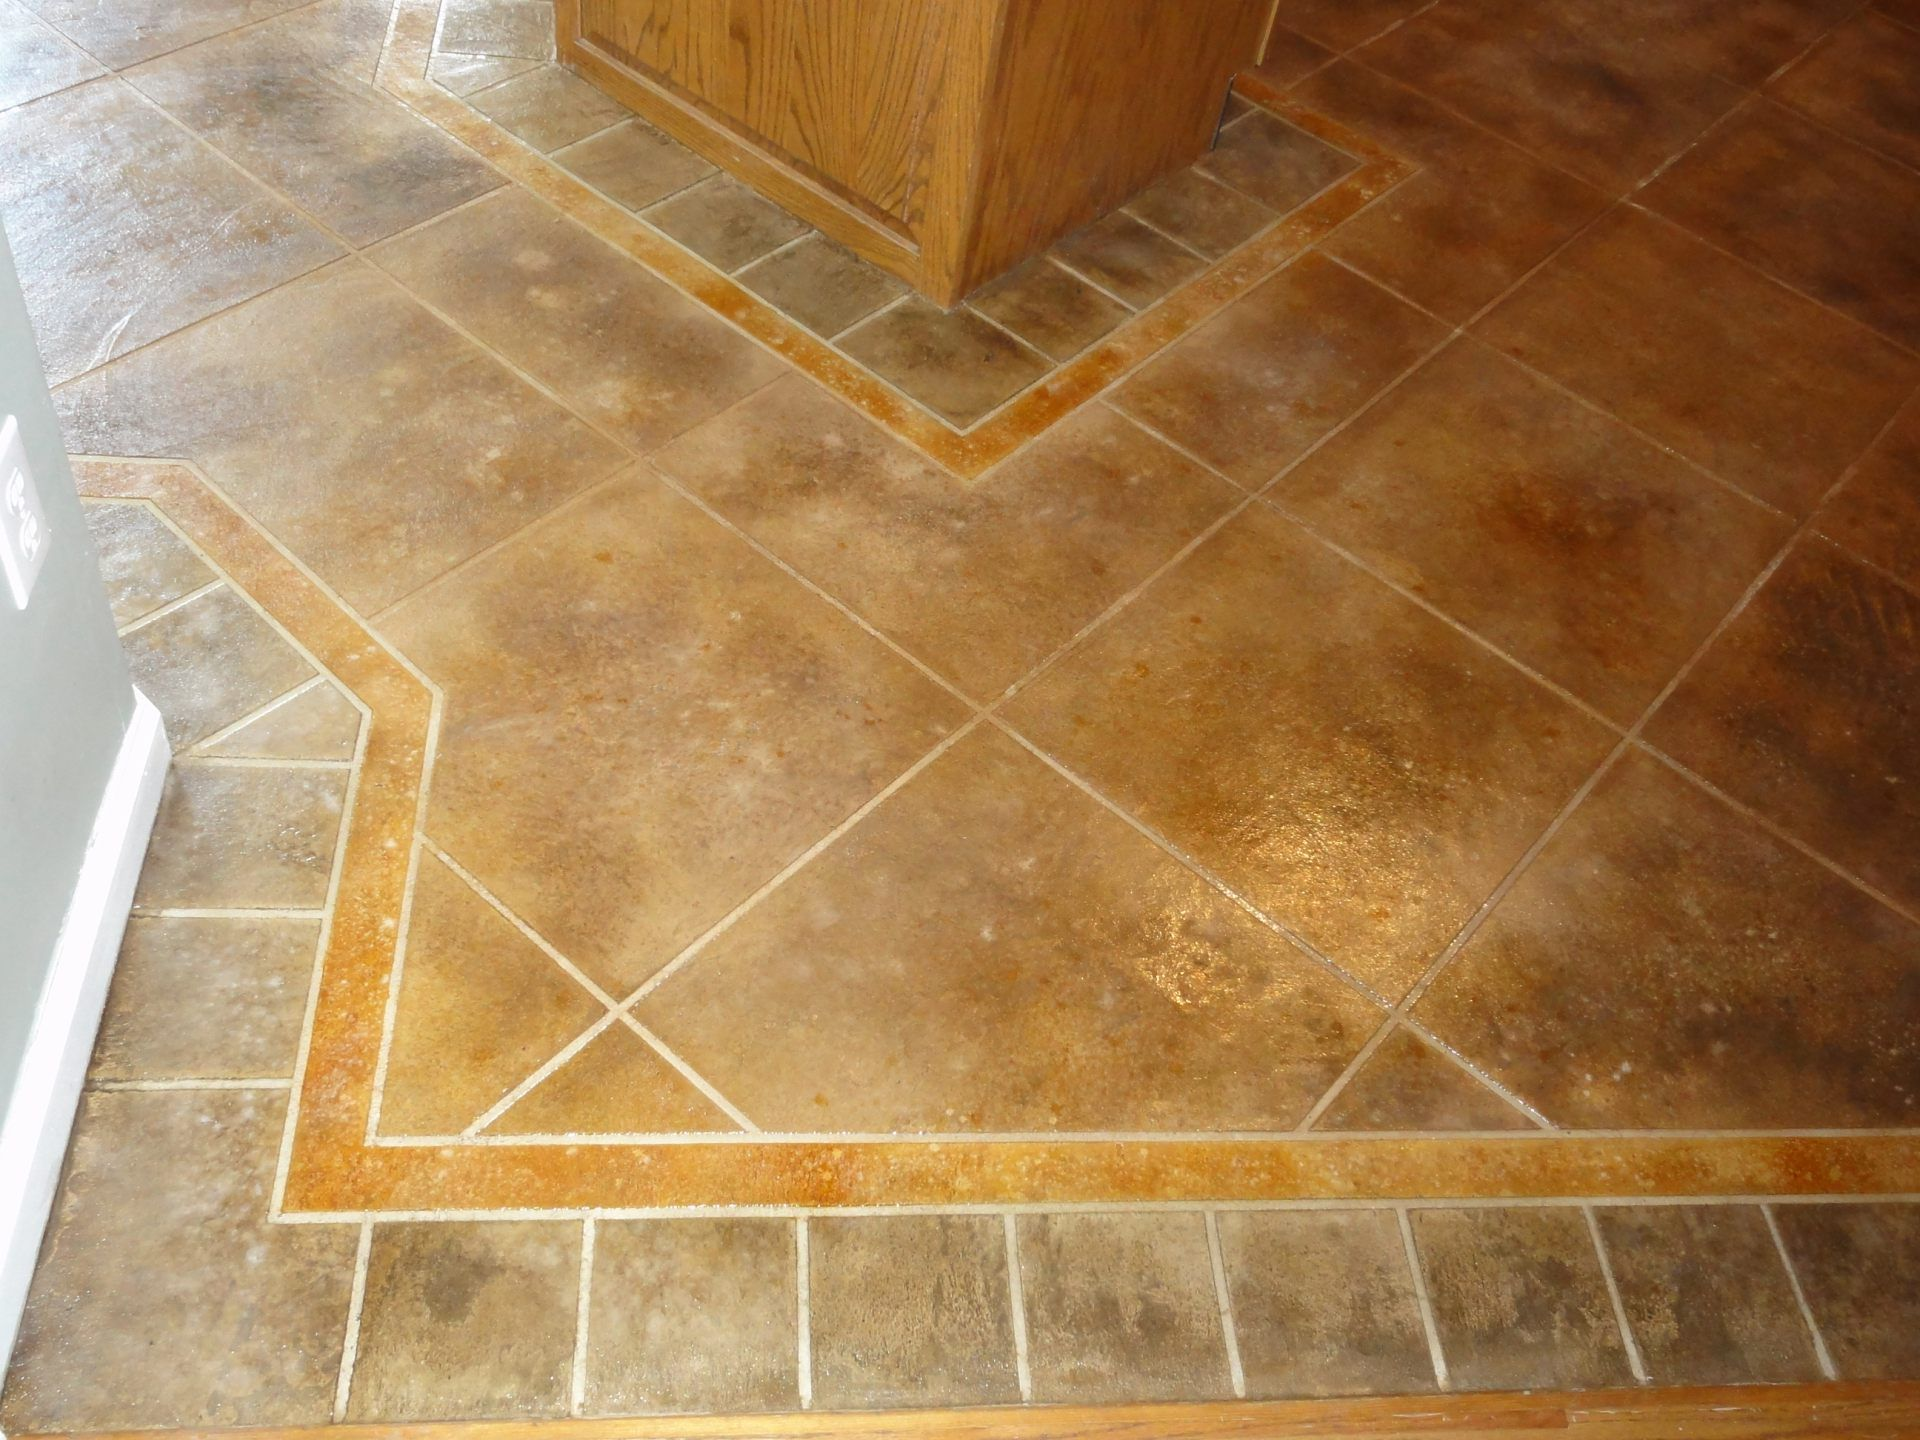 Kitchen Floor Tile Patterns Floor Tile Patterns Concrete Kitchen Floor Random Tile Pattern